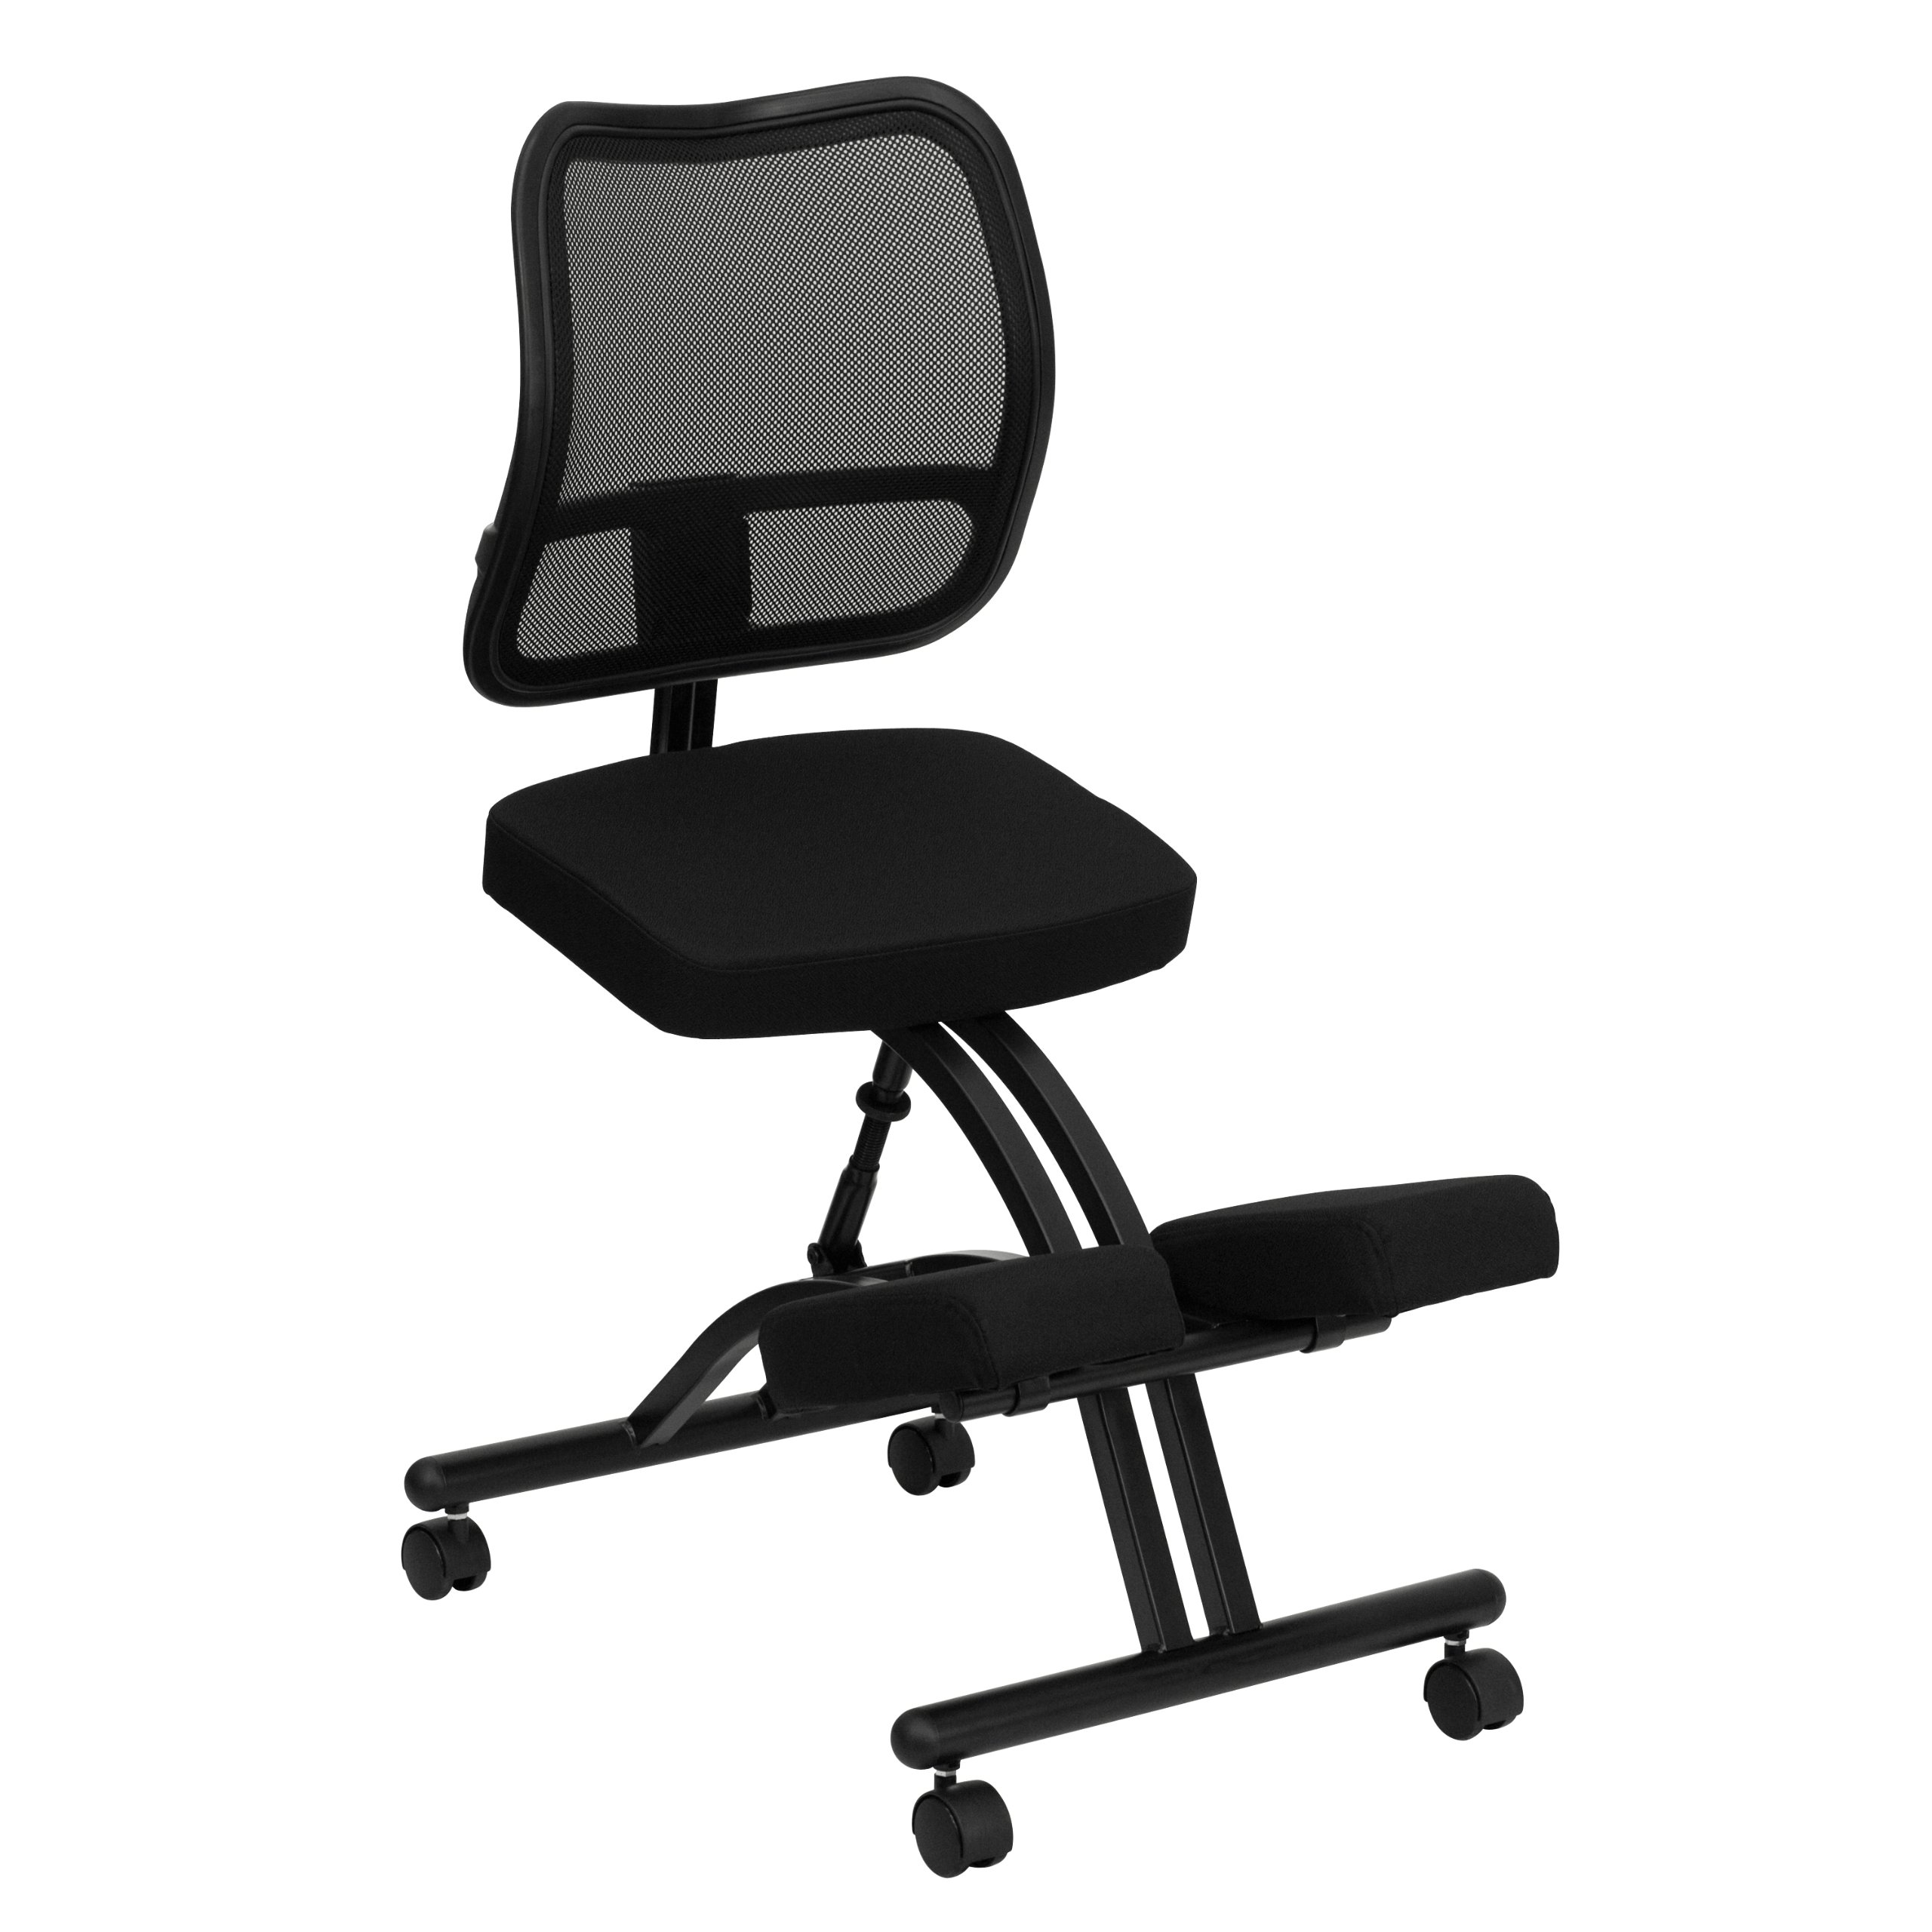 MFO Mobile Ergonomic Kneeling Chair with Black Curved Mesh Back and Fabric Seat